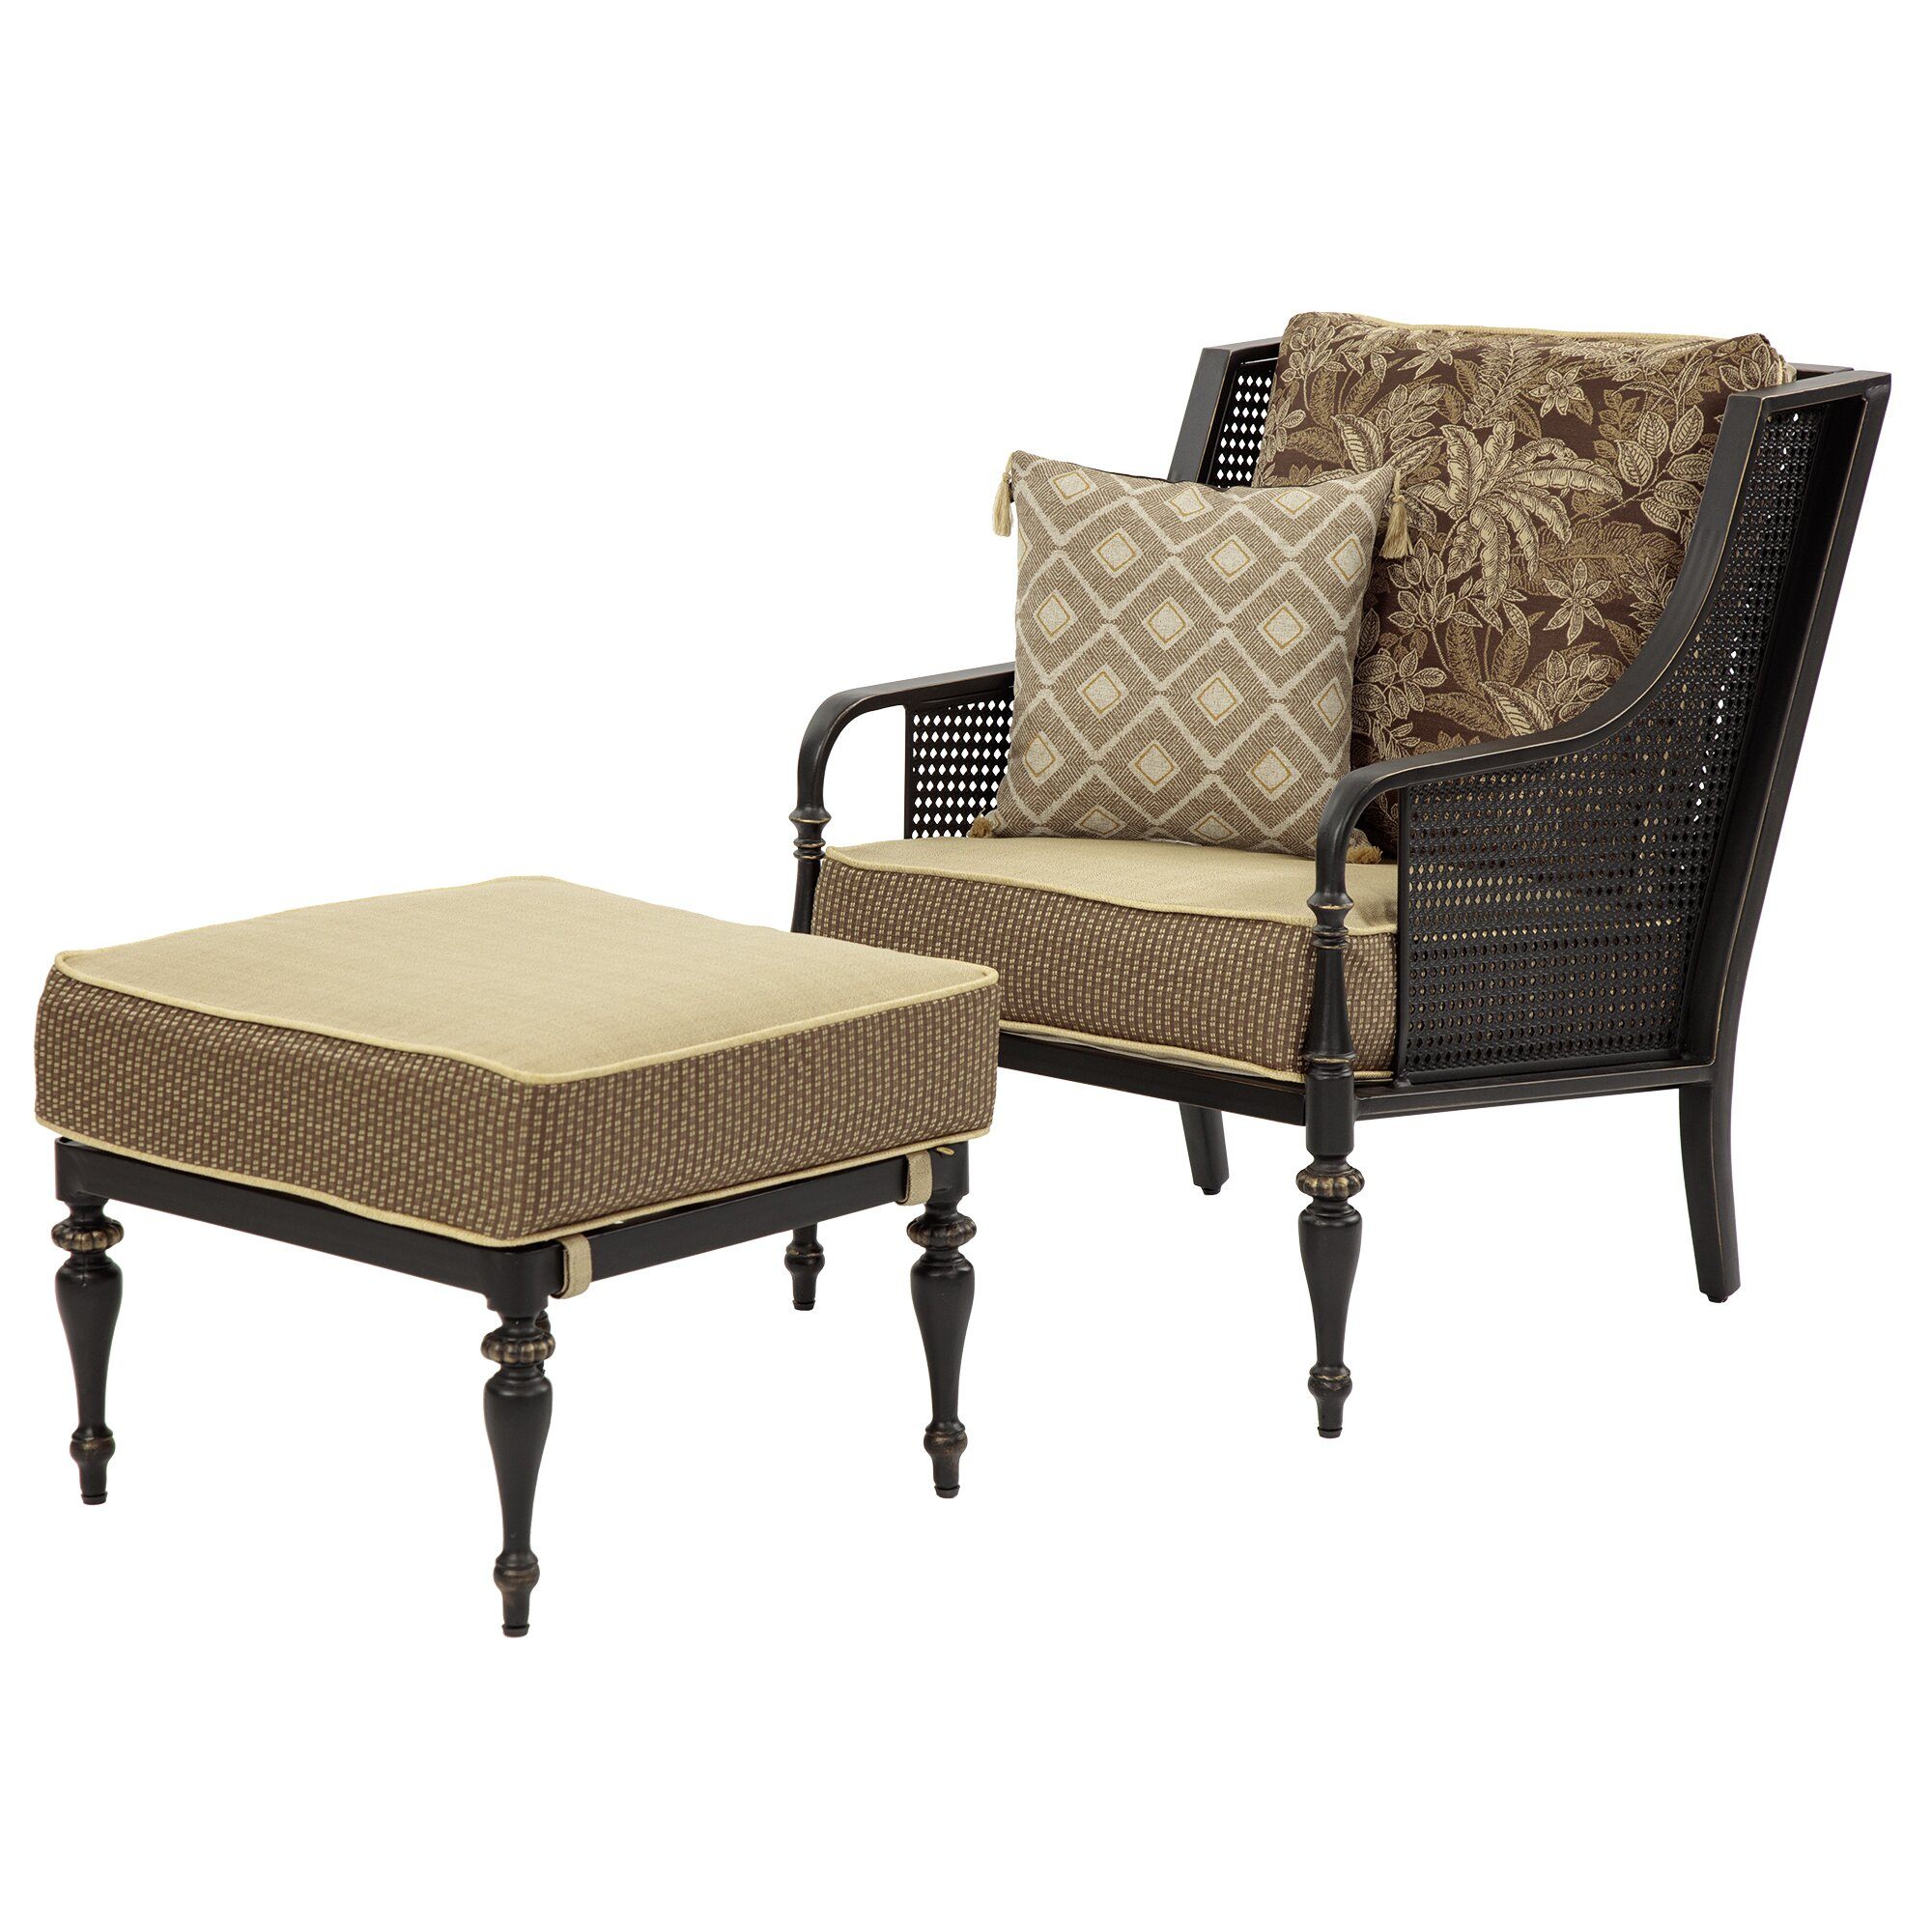 Bombayoutdoors sherborne arm chair and ottoman reviews for Chair and footstool